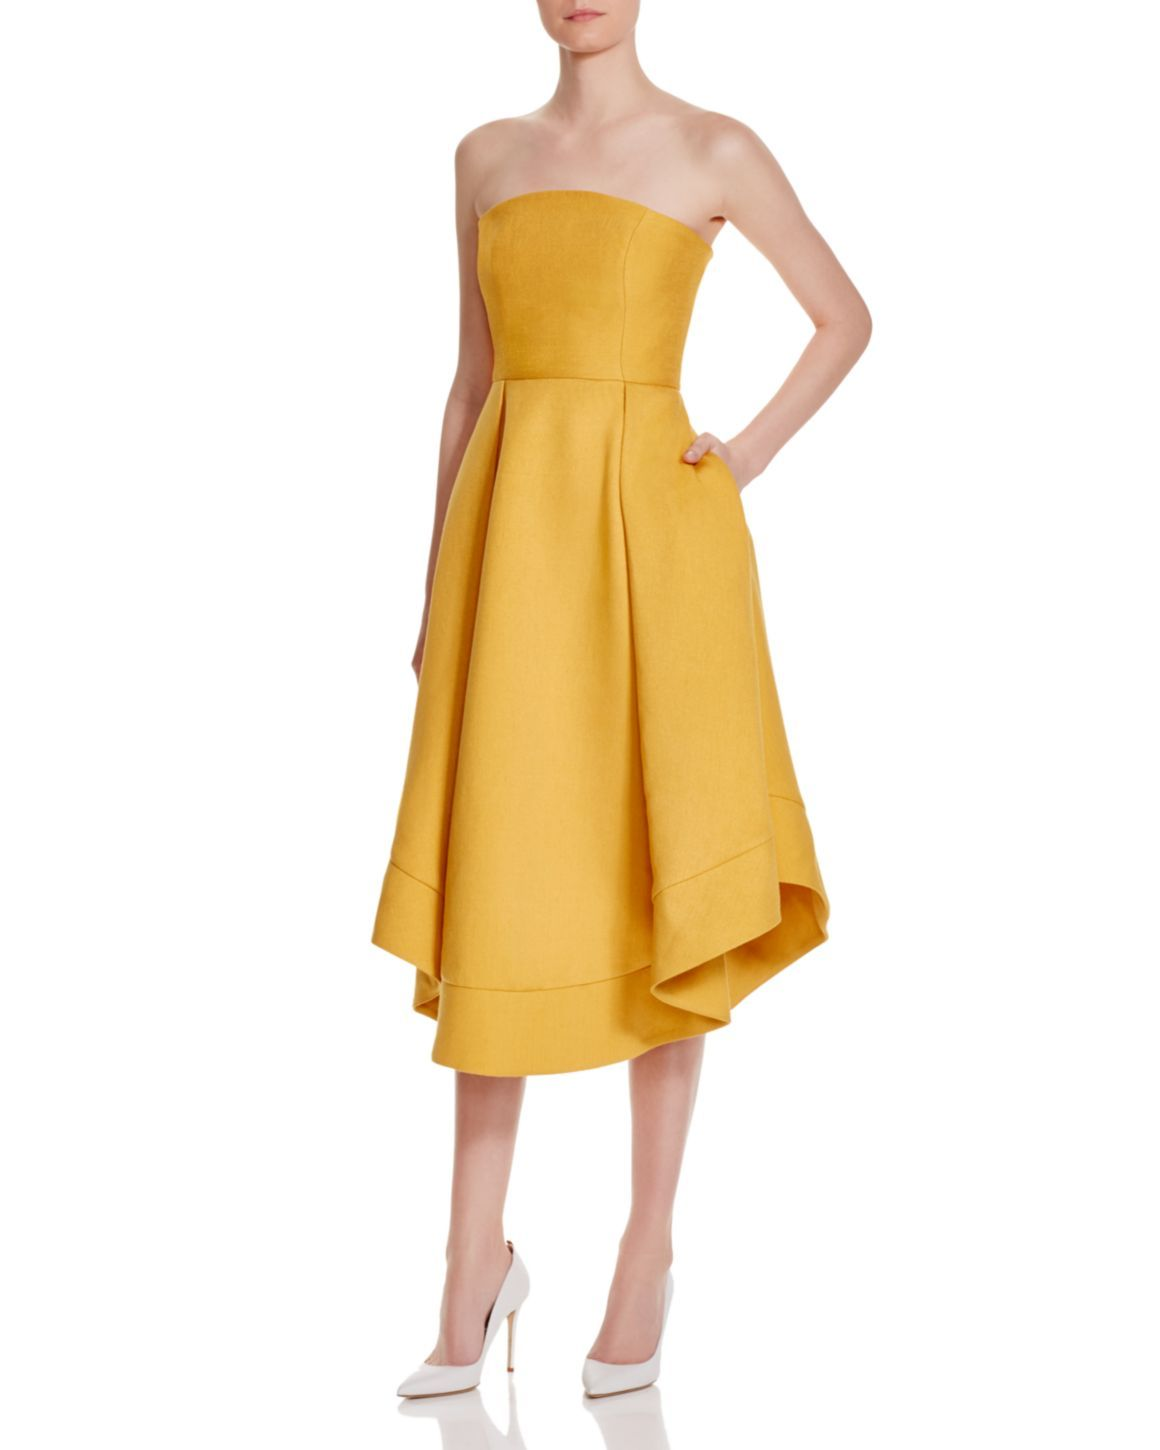 C Meo Collective Making Waves Strapless Dress 100 Exclusive Women Dresses Cocktail Party Bloomingdale S Dresses Cocktail Dress Yellow Silk Wrap Dresses [ 1450 x 1160 Pixel ]